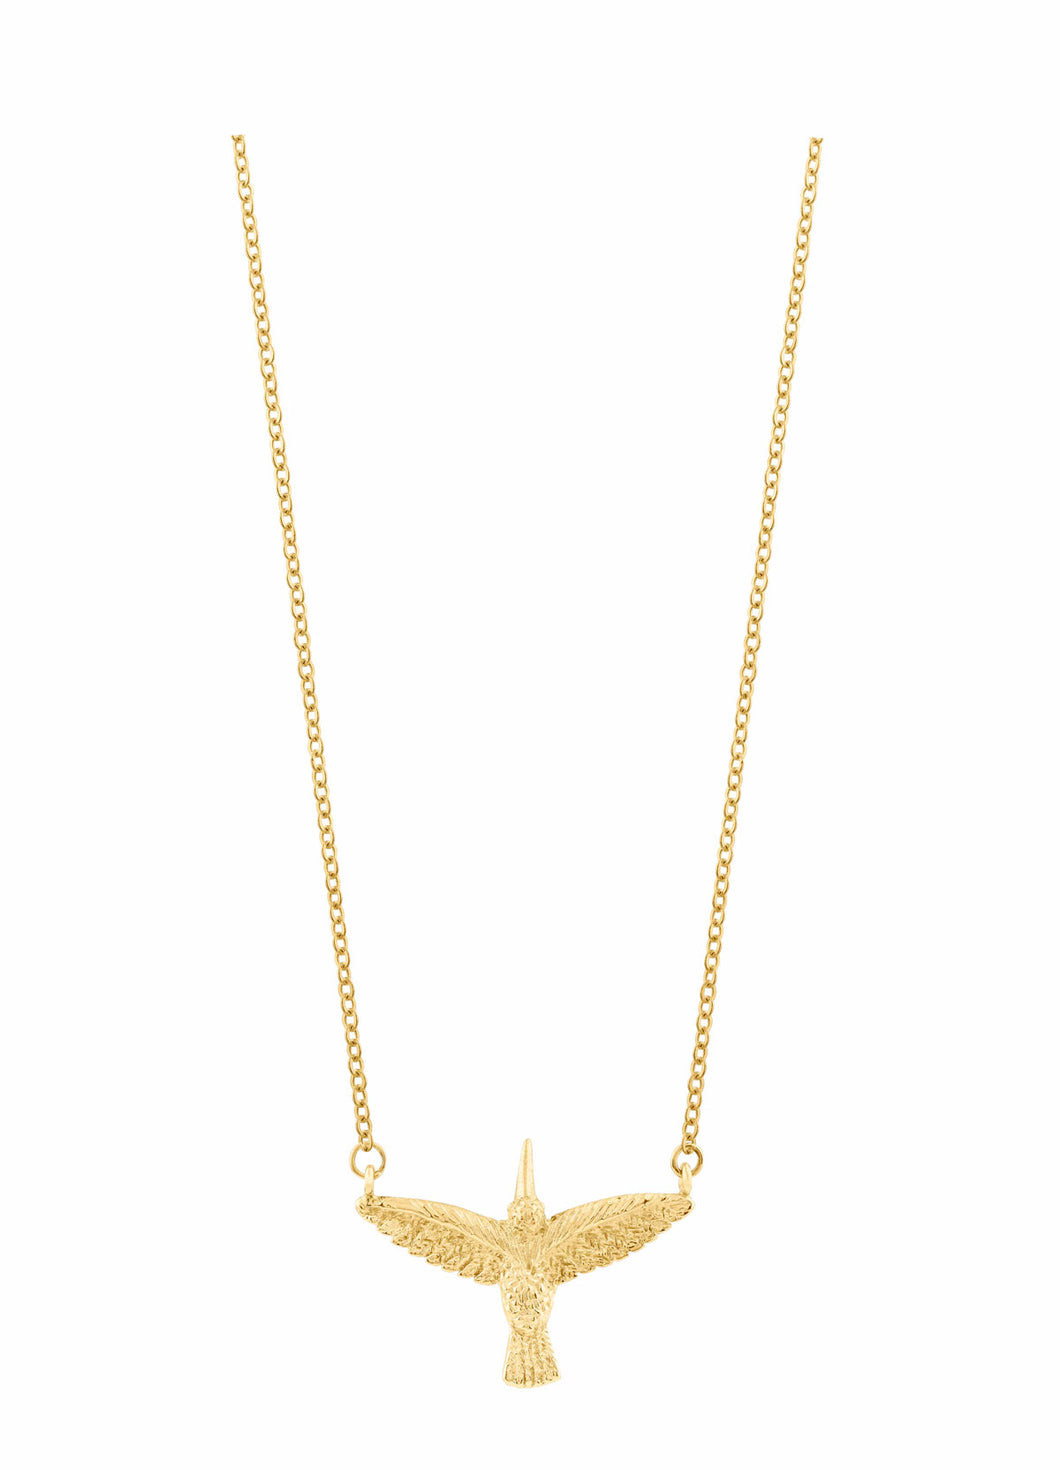 Sophie Simone | Huitzilin Necklace - Small